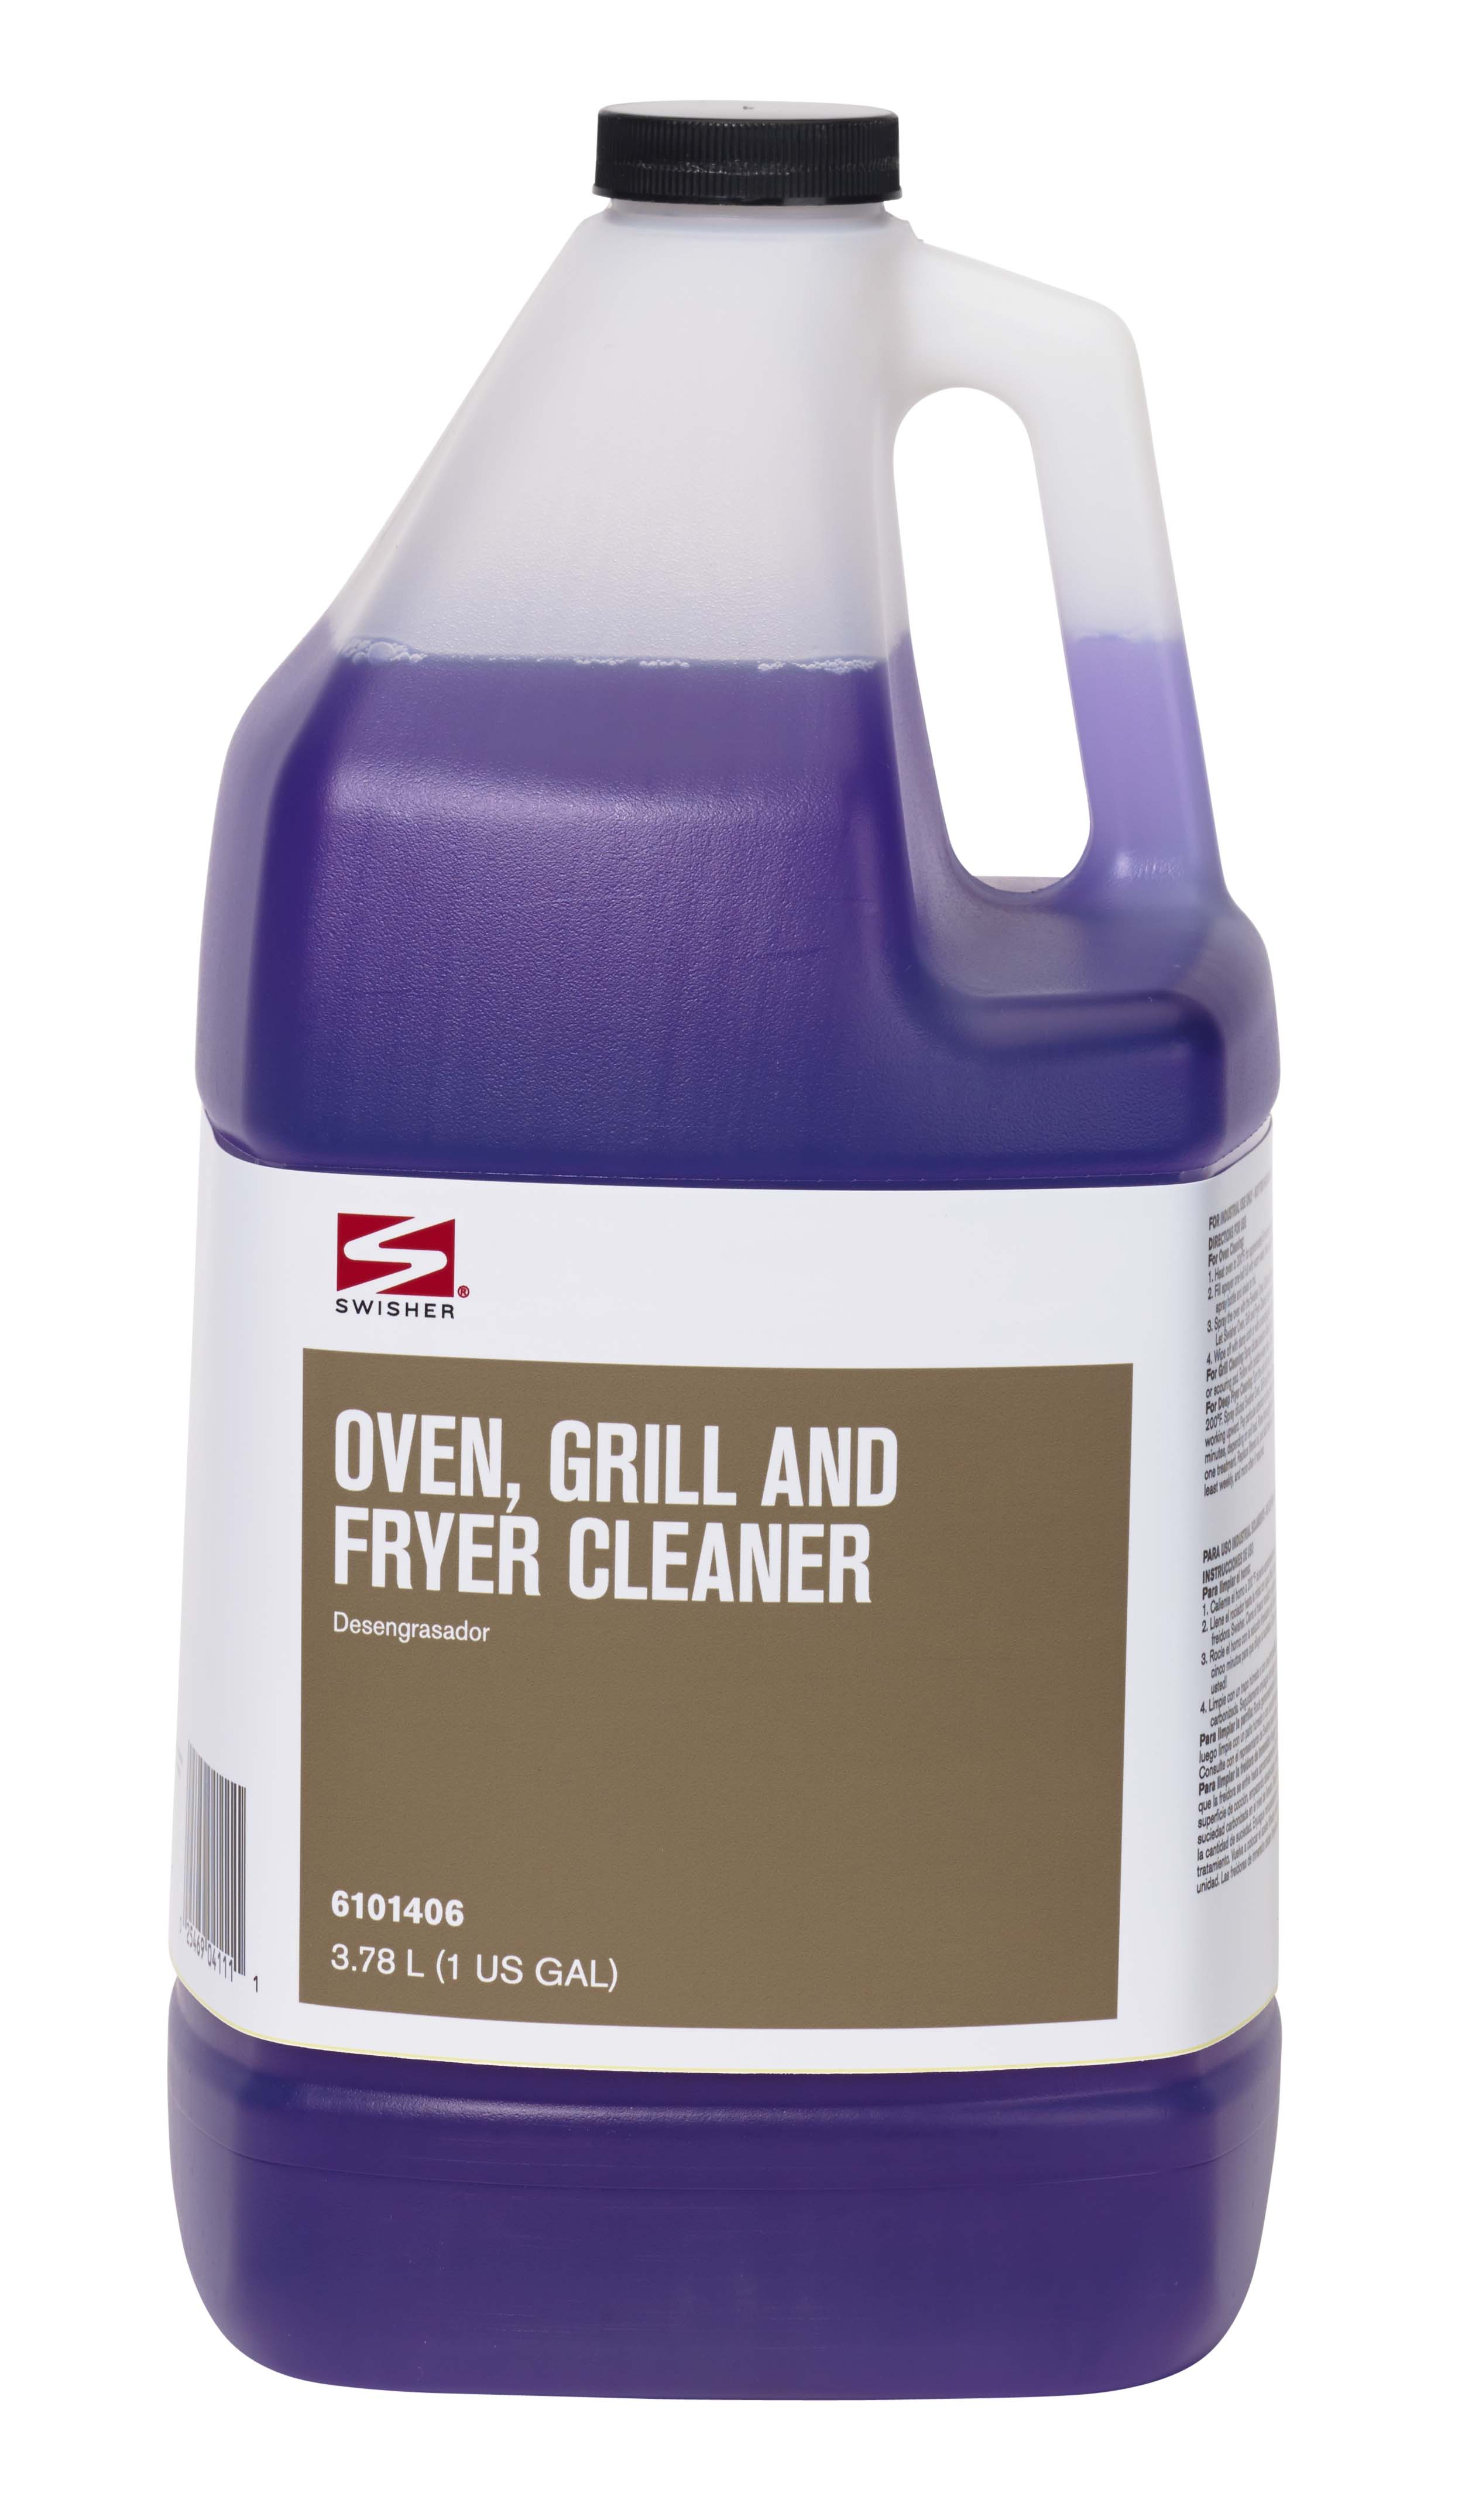 Swisher Oven Grill and Fryer Cleaner